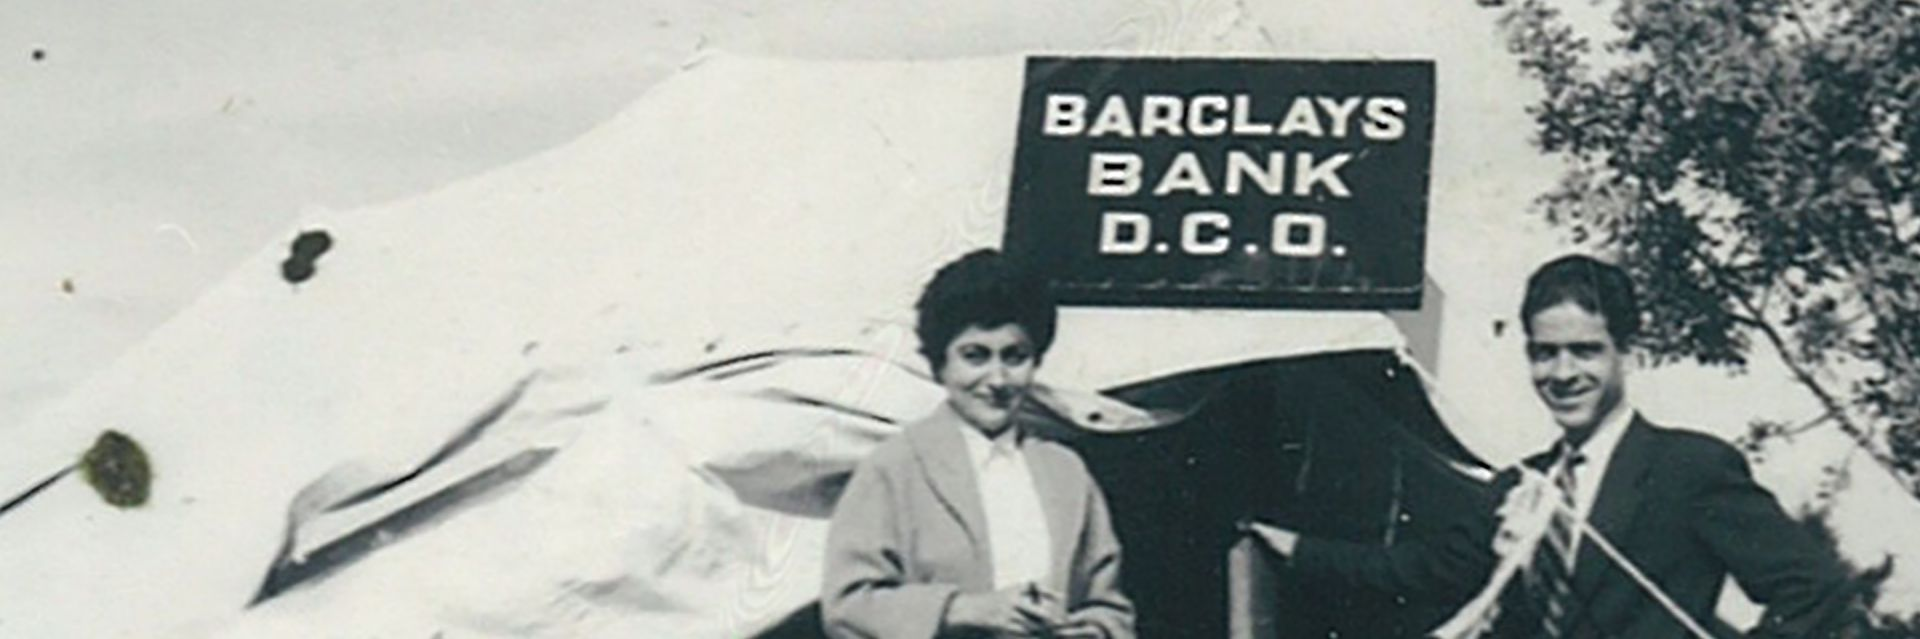 Araxie Yaghlian, Barclays' first female manager, standing outside the tent from which she conducted business in Cyprus.